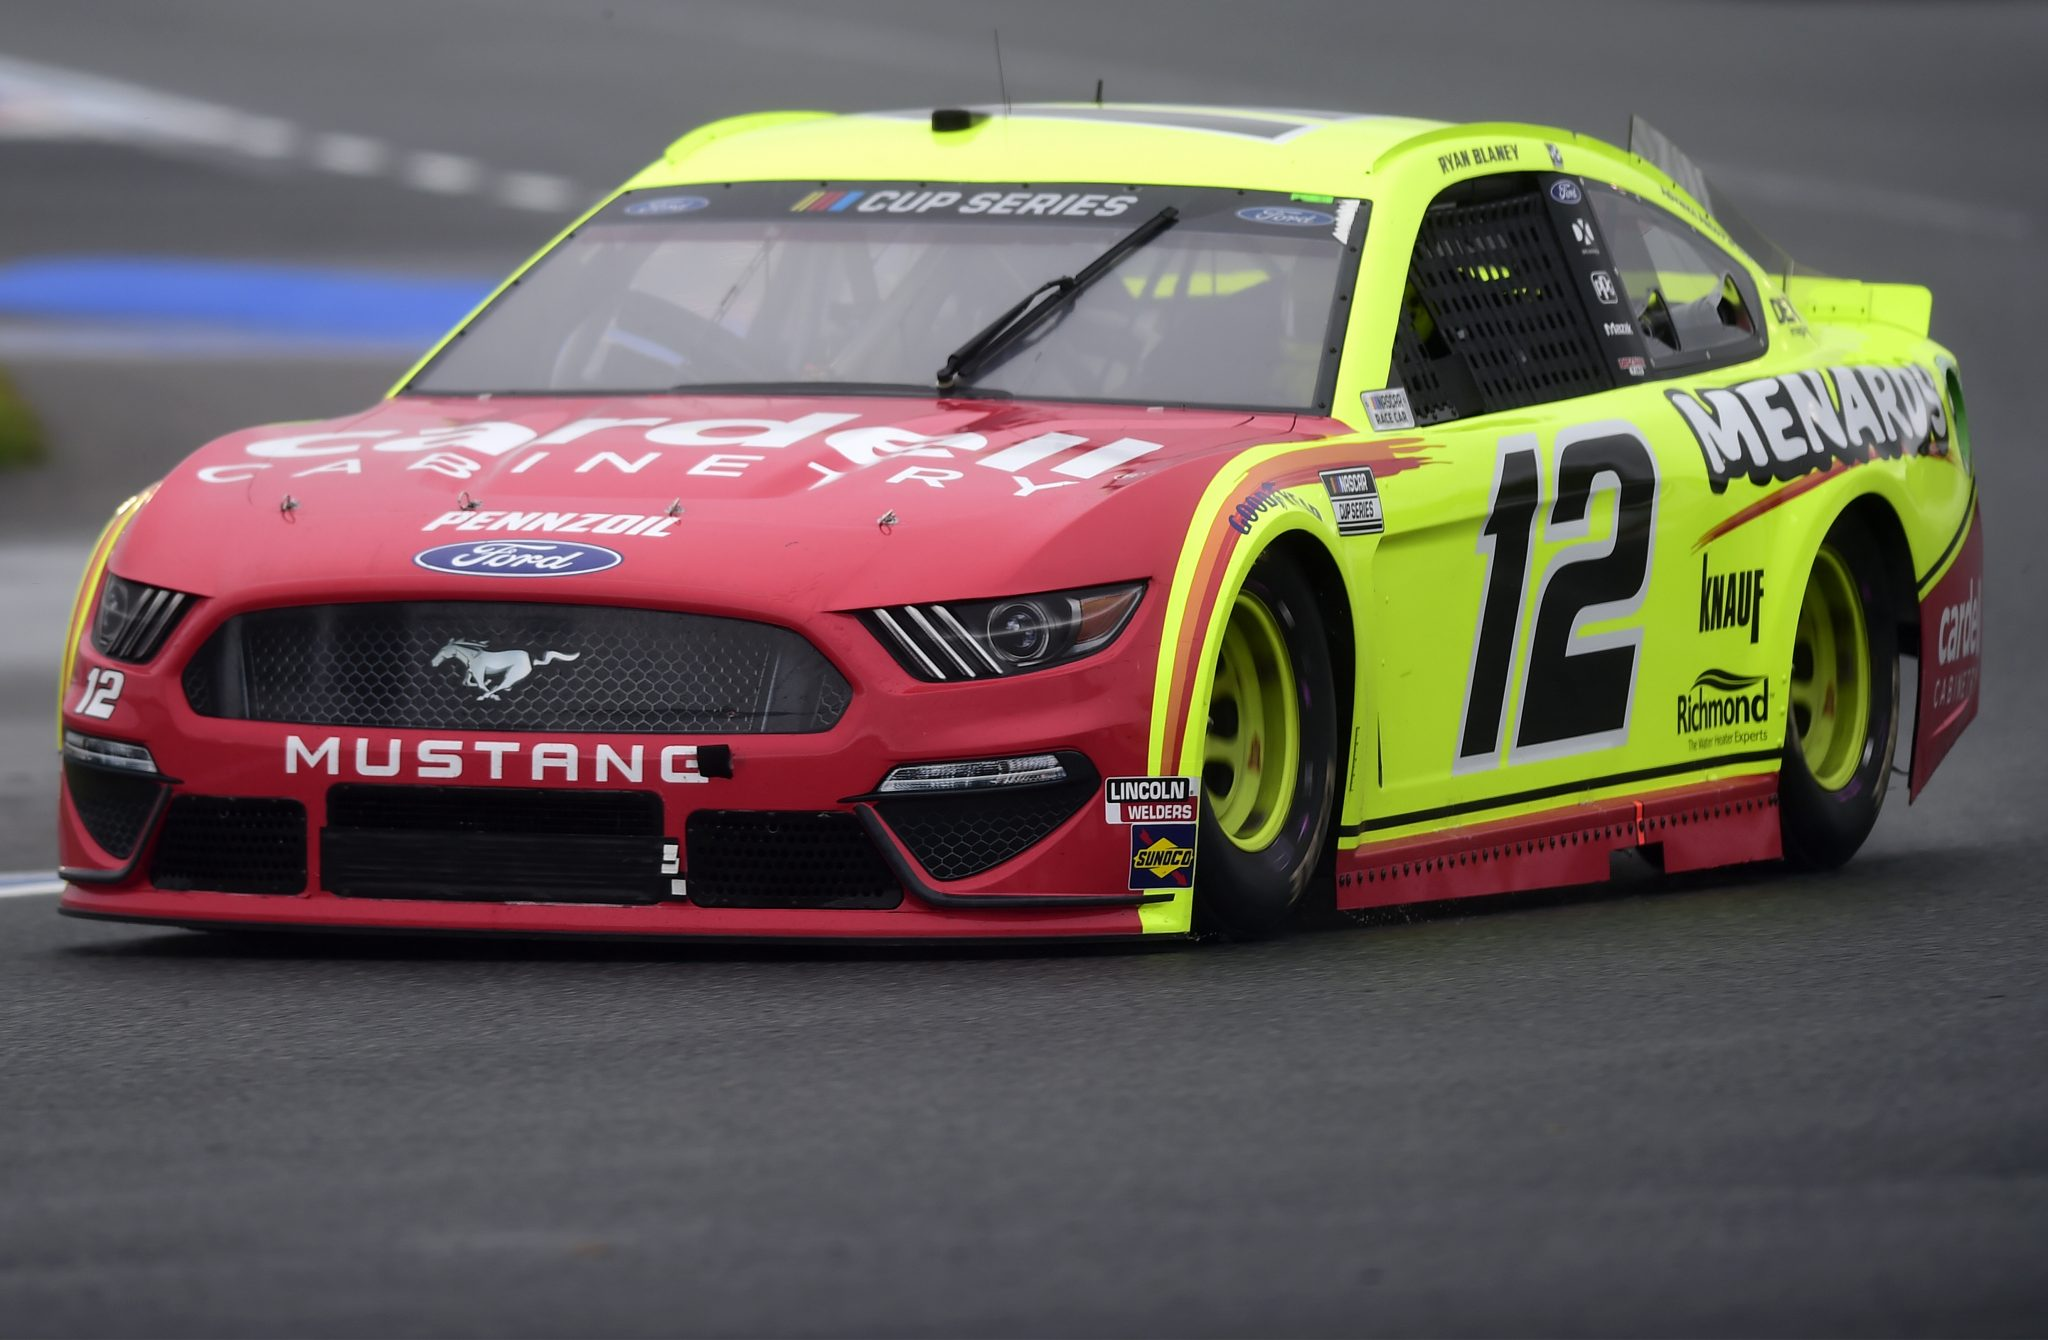 CONCORD, NORTH CAROLINA - OCTOBER 11: Ryan Blaney, driver of the #12 Menards/Cardell Cabinetry Ford, drives during the NASCAR Cup Series Bank of America ROVAL 400 at Charlotte Motor Speedway on October 11, 2020 in Concord, North Carolina. (Photo by Jared C. Tilton/Getty Images) | Getty Images